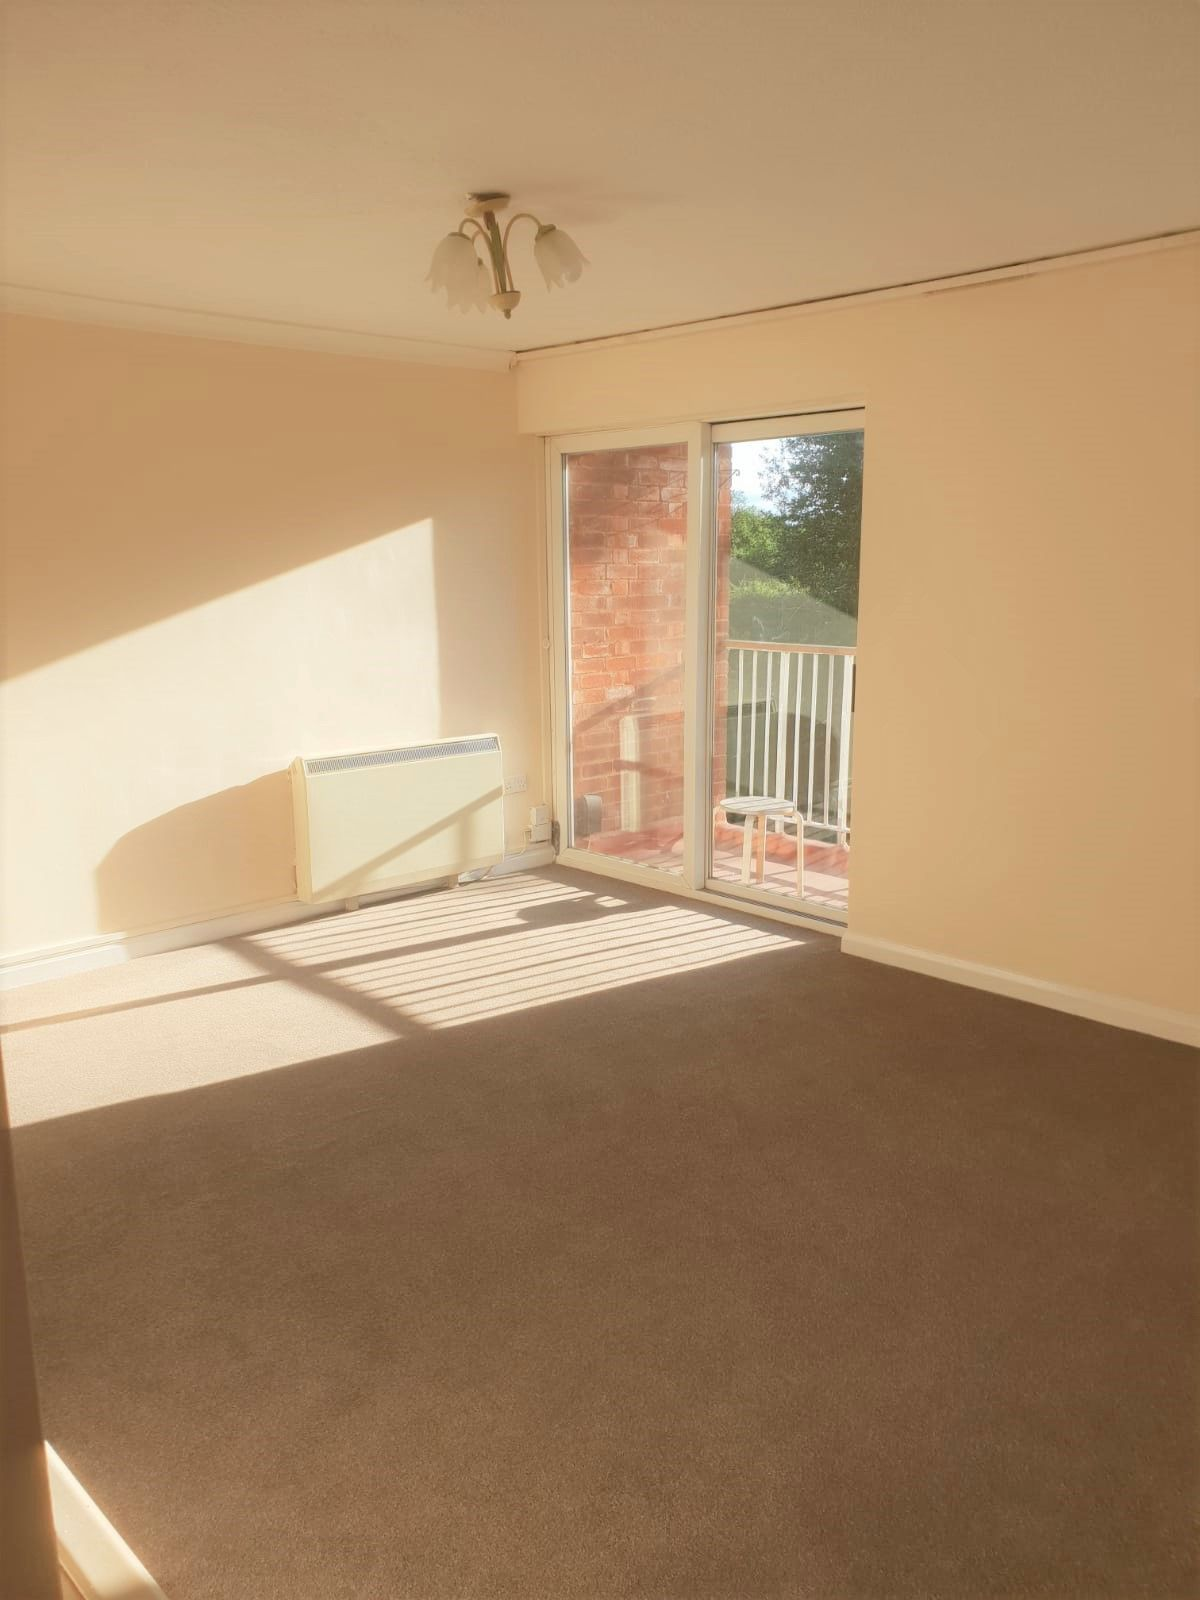 2 Bedroom Apartment Flat/apartment To Rent - Lounge with Balcony